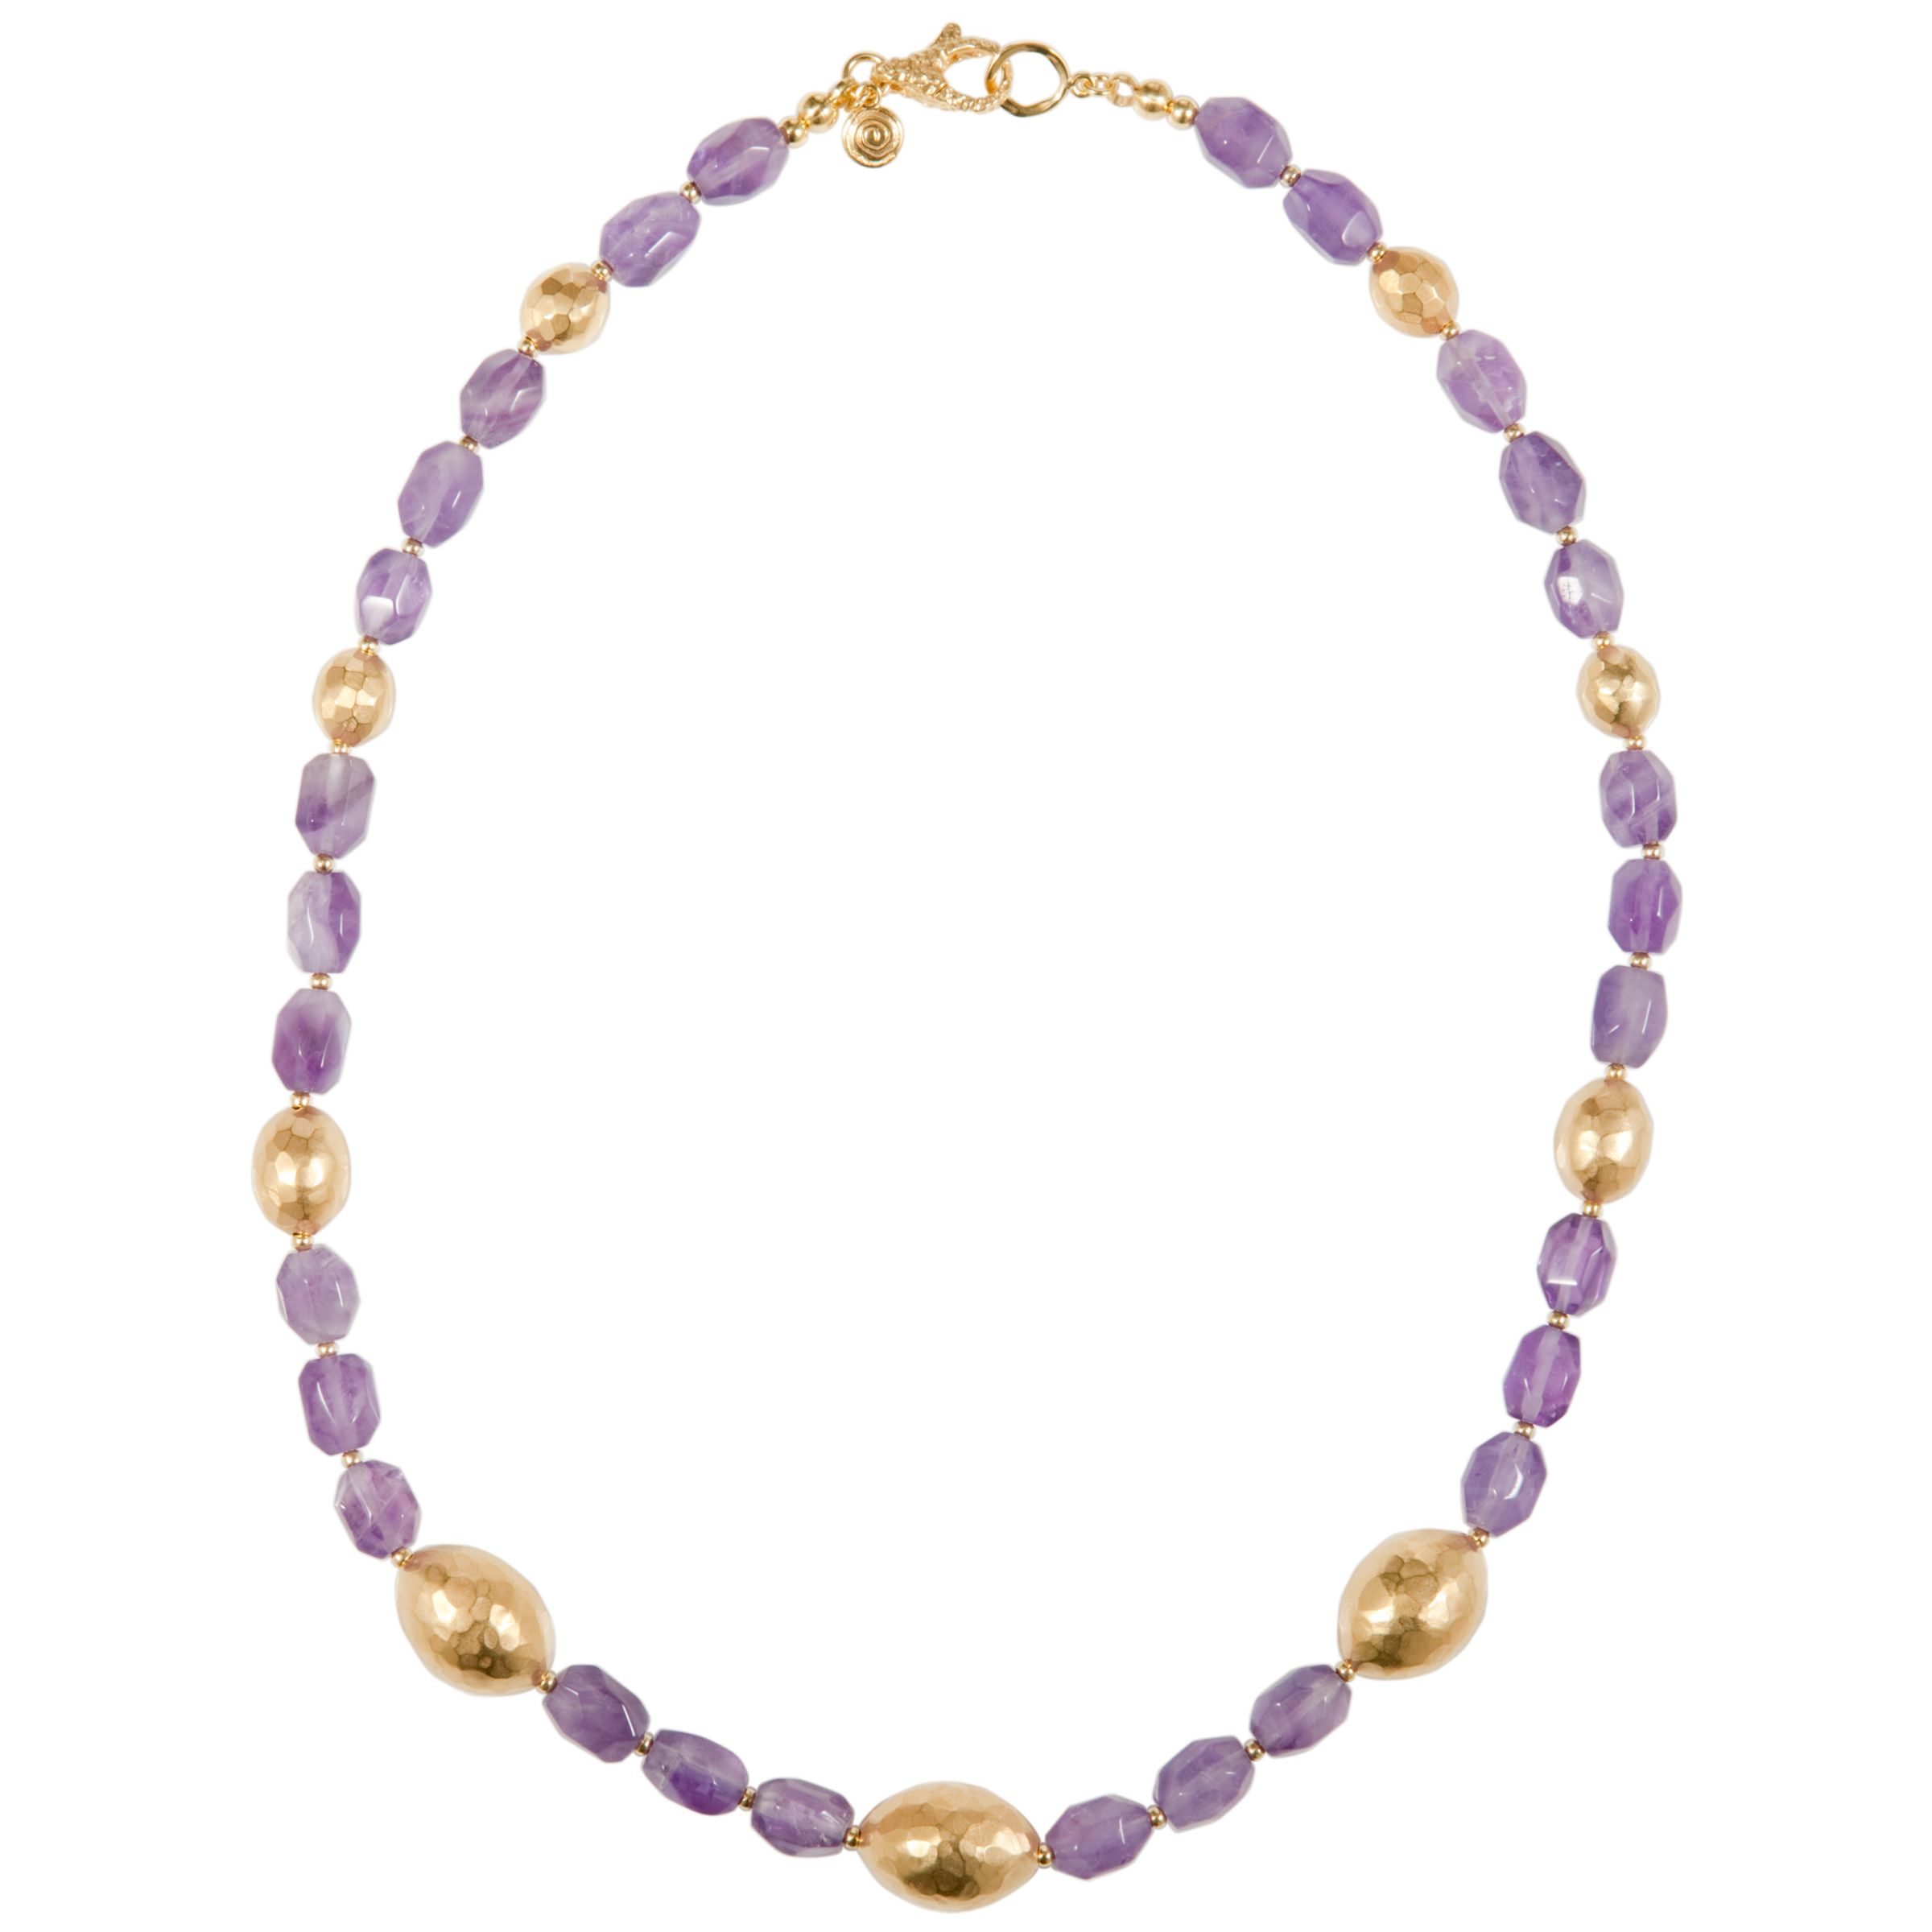 Etrusca 18ct Gold Plated Hammered Bead Gemstone Necklace